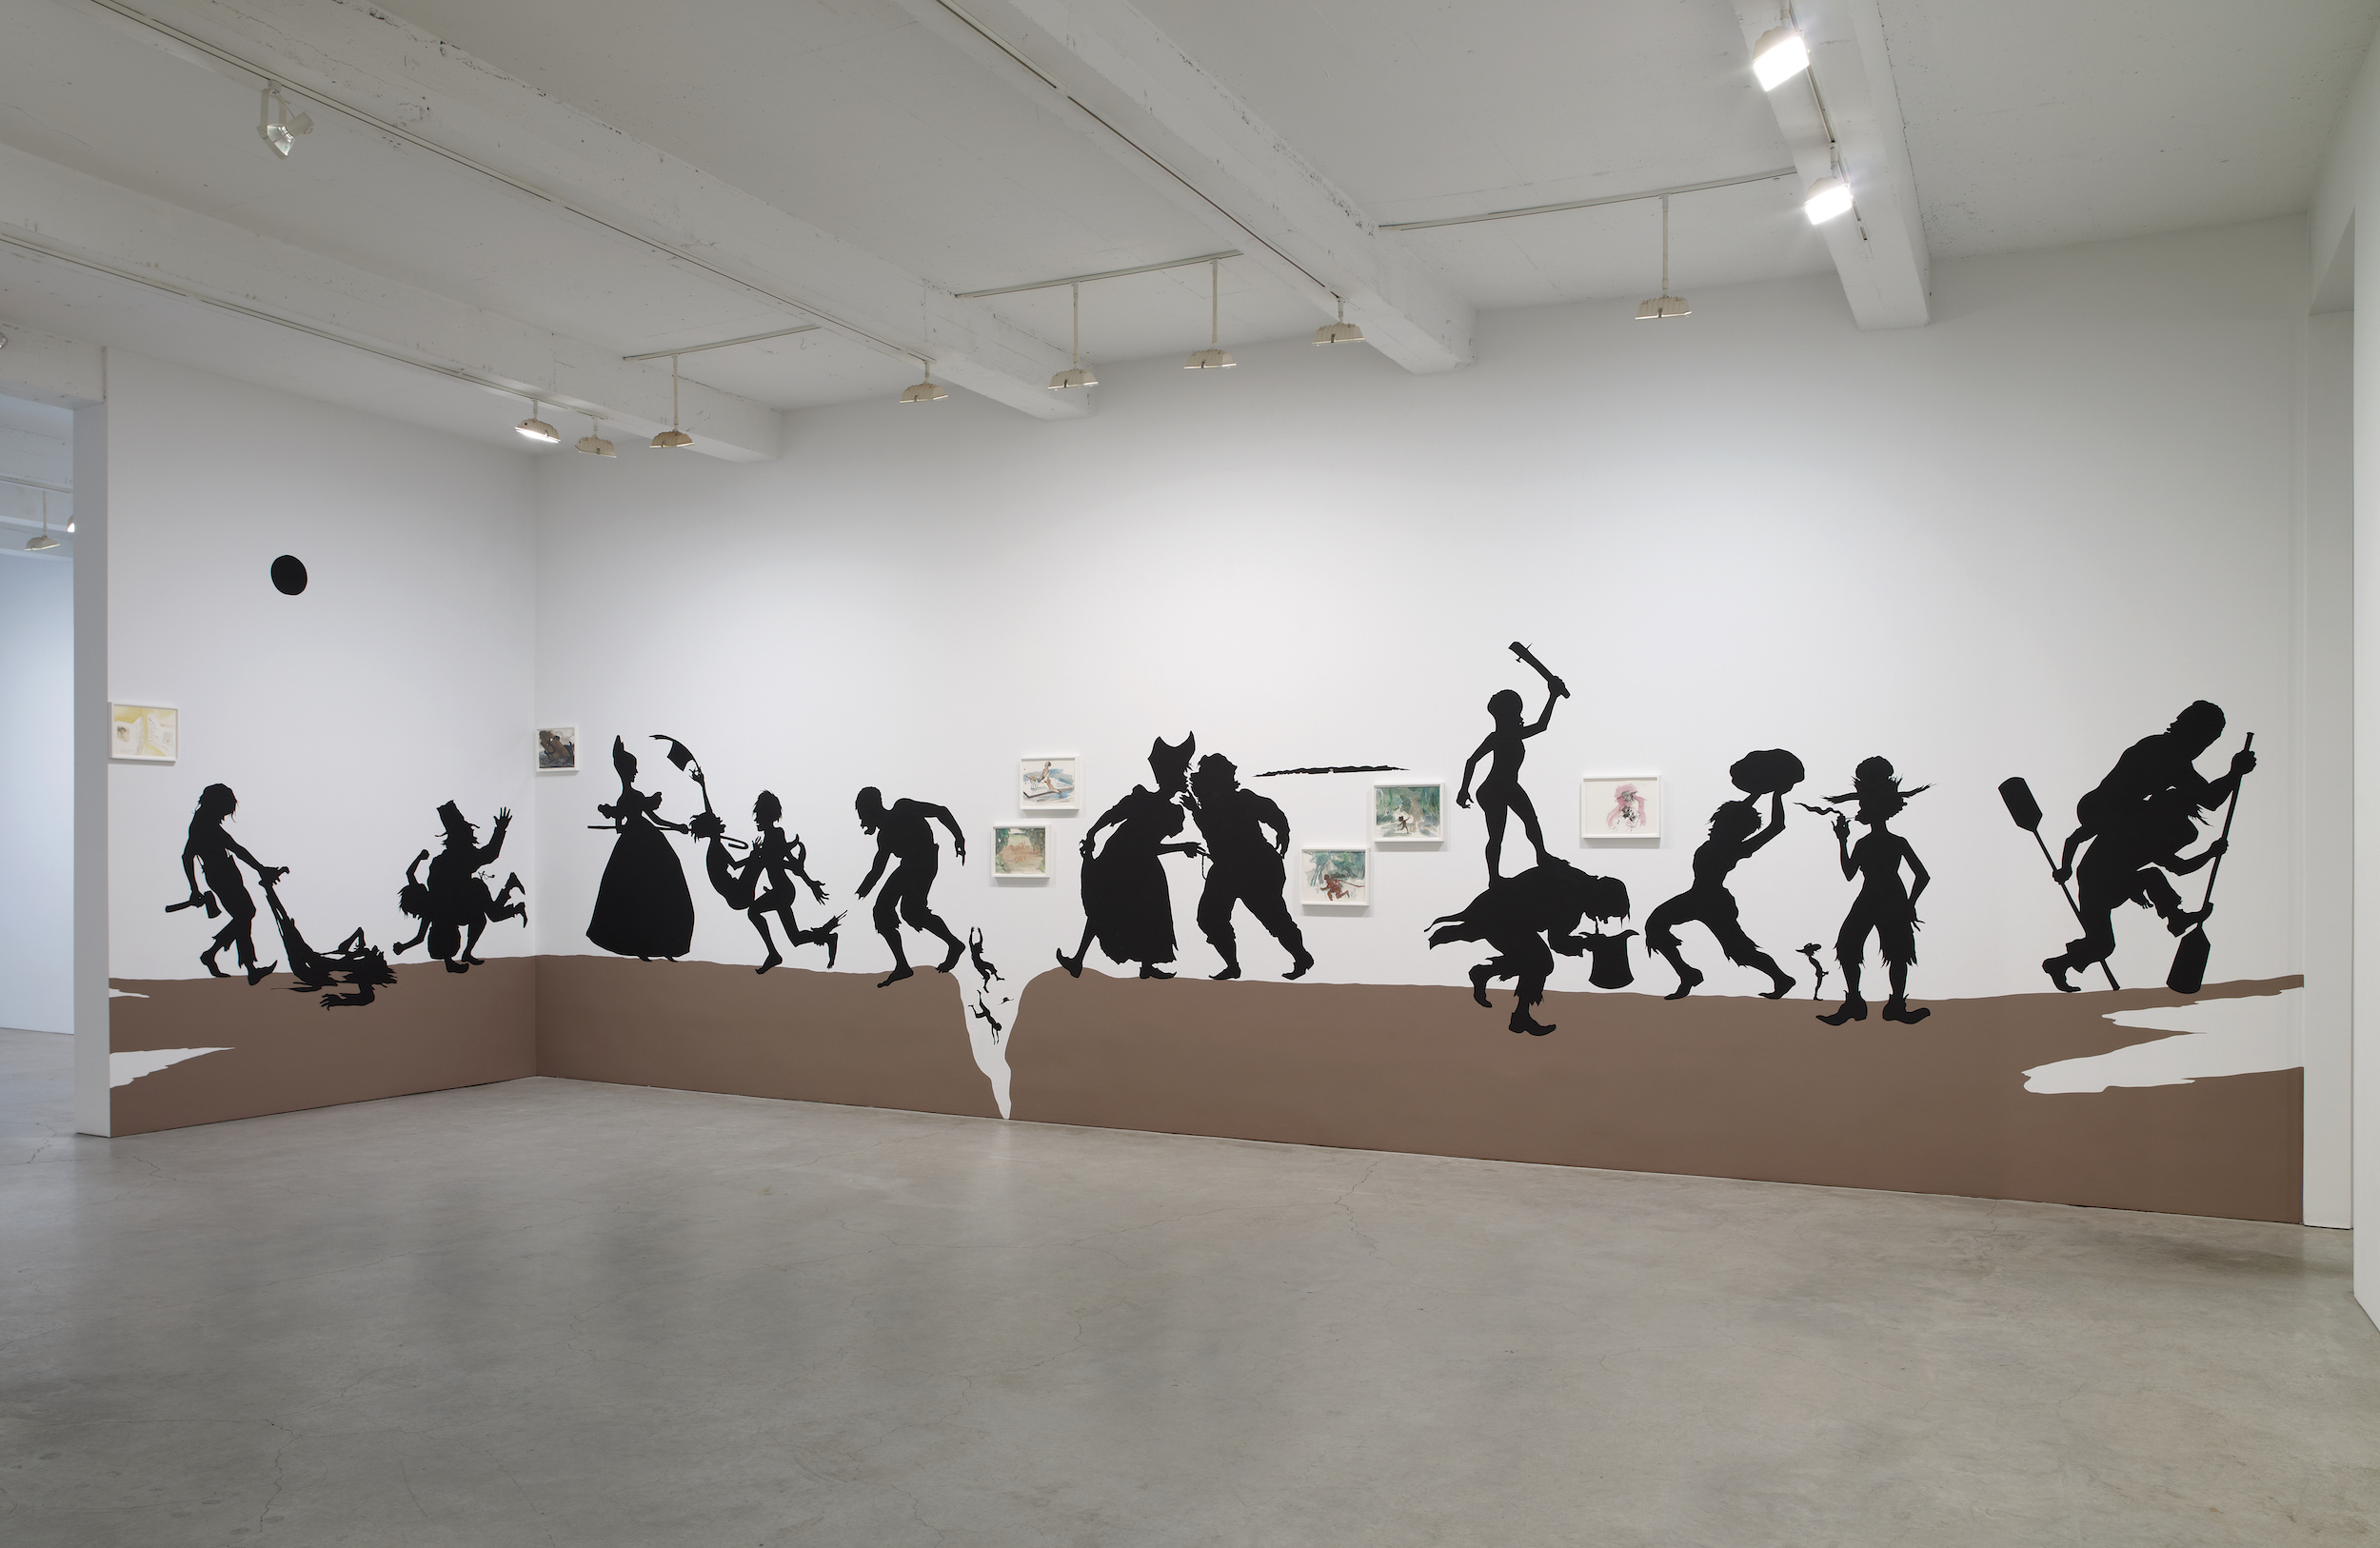 Kara Walker, The Nigger Huck Finn Pursues Happiness Beyond the Narrow Constraints of your Overdetermined Thesis on Freedom - Drawn and Quartered by Mister Kara Walkerberry, with Condolences to The Authors , 2010. Cut paper and paint on wall; gouache and ink on paper (framed). Installation approx. 144 x 576 inches. Works on paper, 7 parts: 11.5 x 15 inches.Photo: Jason Wyche